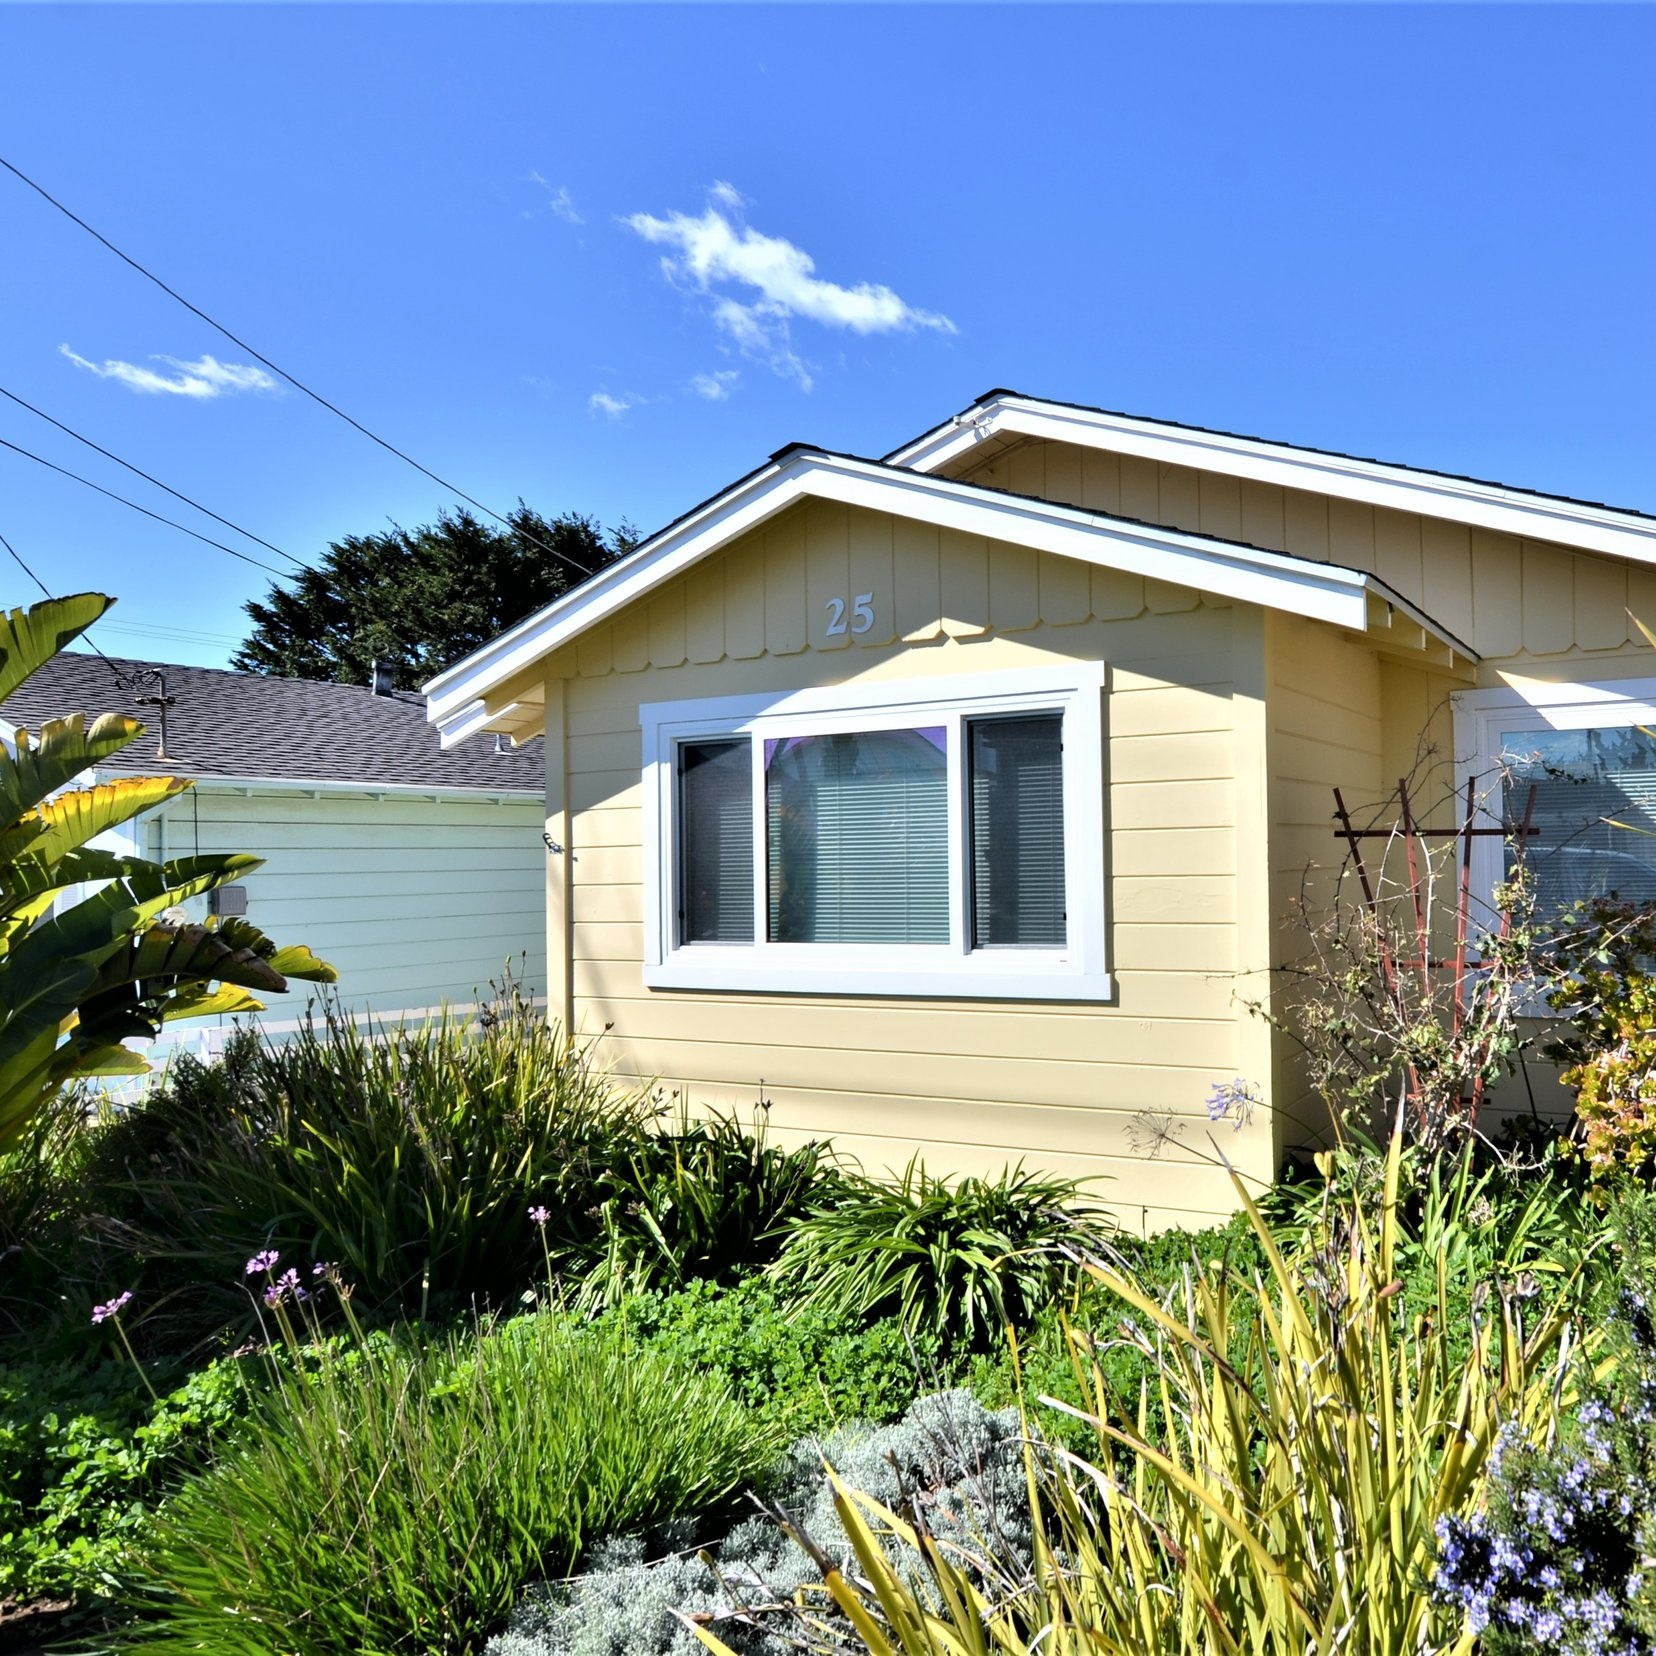 IN ESCROW - Adorable coastal cottage in the numbered streets of Cayucos -